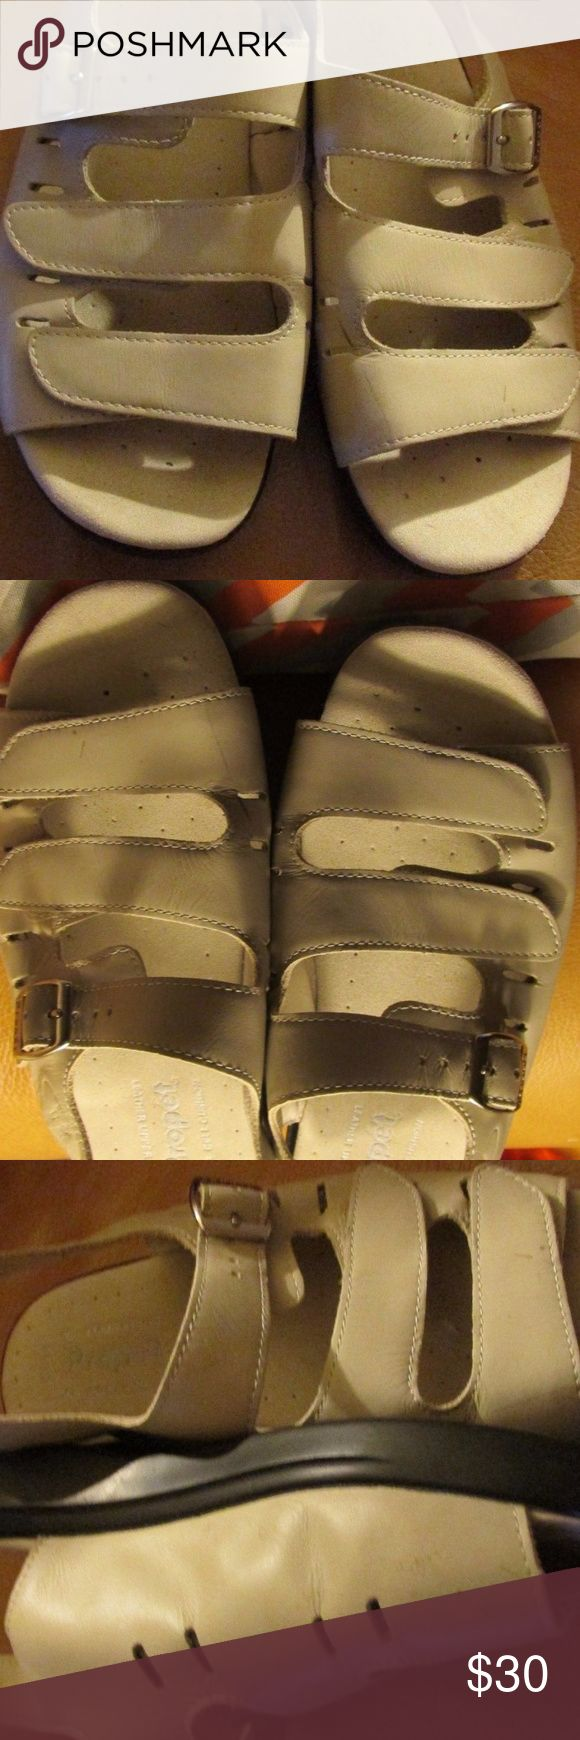 PROPET Soft Leather WALKING SANDALS Cream PROPET Soft Leather WALKING SANDALS Neutral Cream Beige SIZE 6 MEDIUM Propet Shoes Slippers